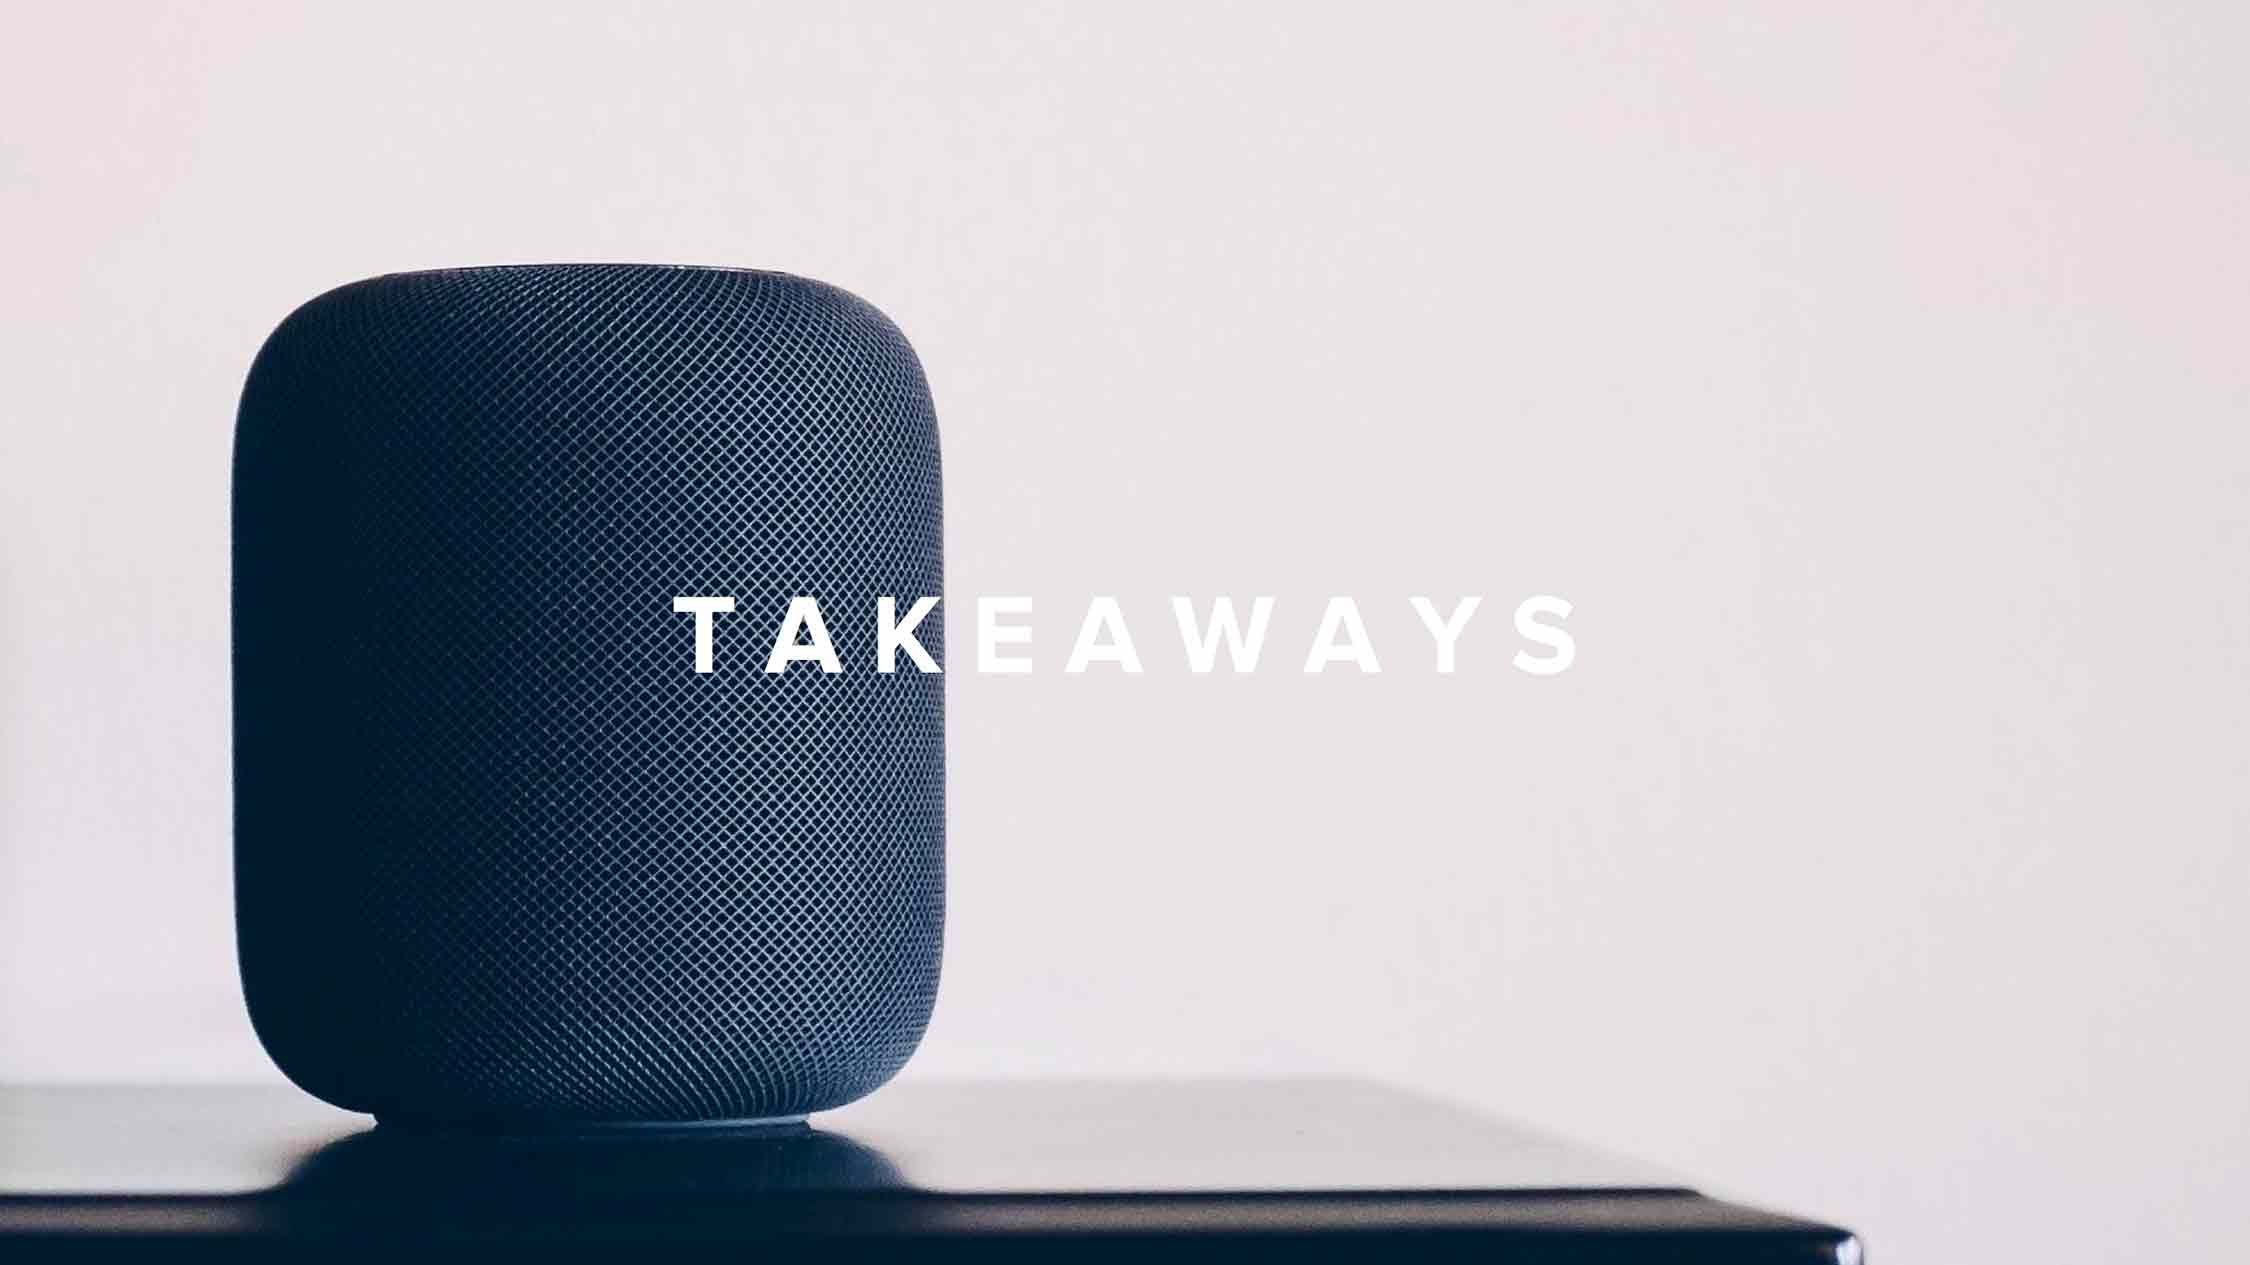 """Takeaways"" written atop an Apple HomePod."